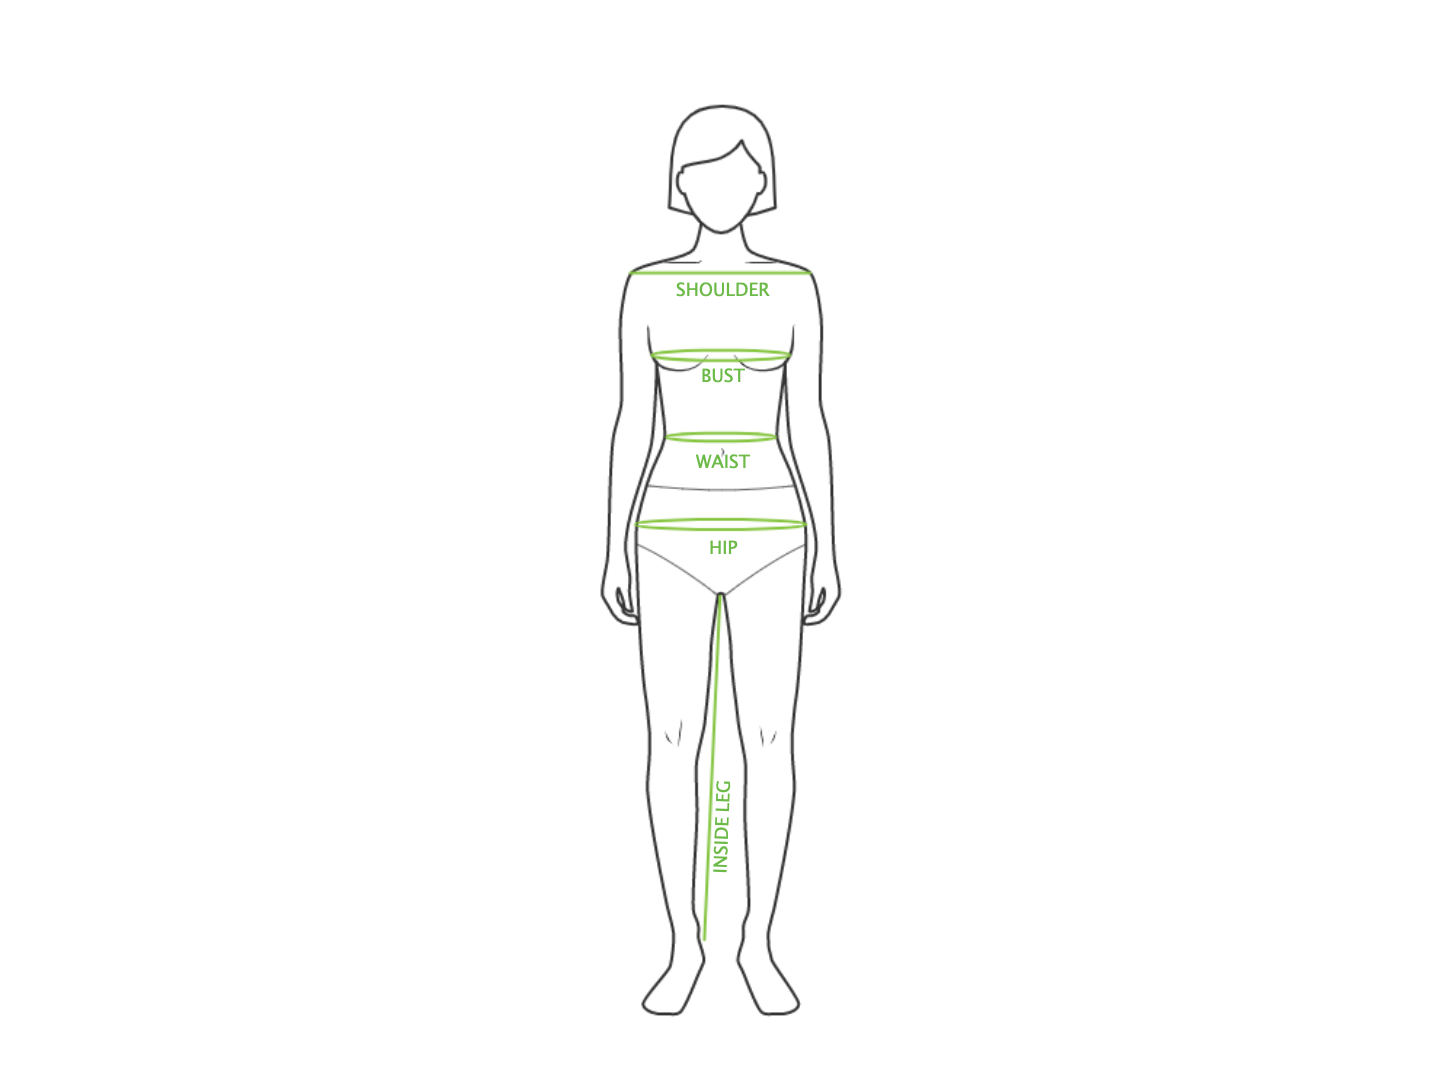 How to measure a skirt? Kiwi Sizing - Improve conversion and lower returns.